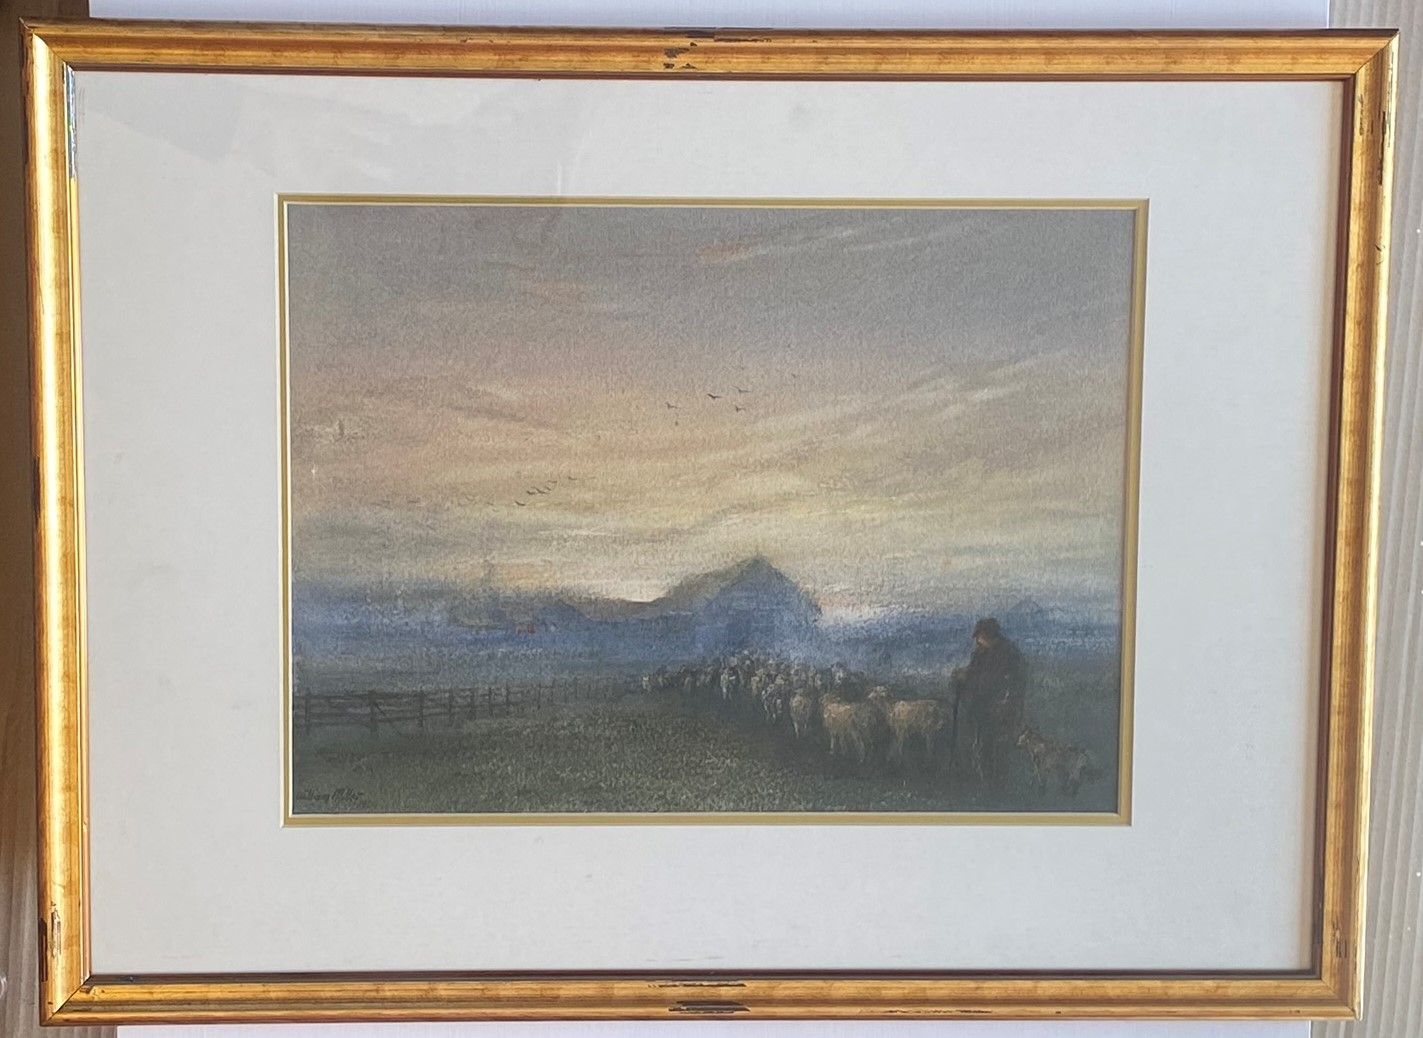 Lot 48 - Original Signed Watercolour. William Miller - A Glimpse Of Home